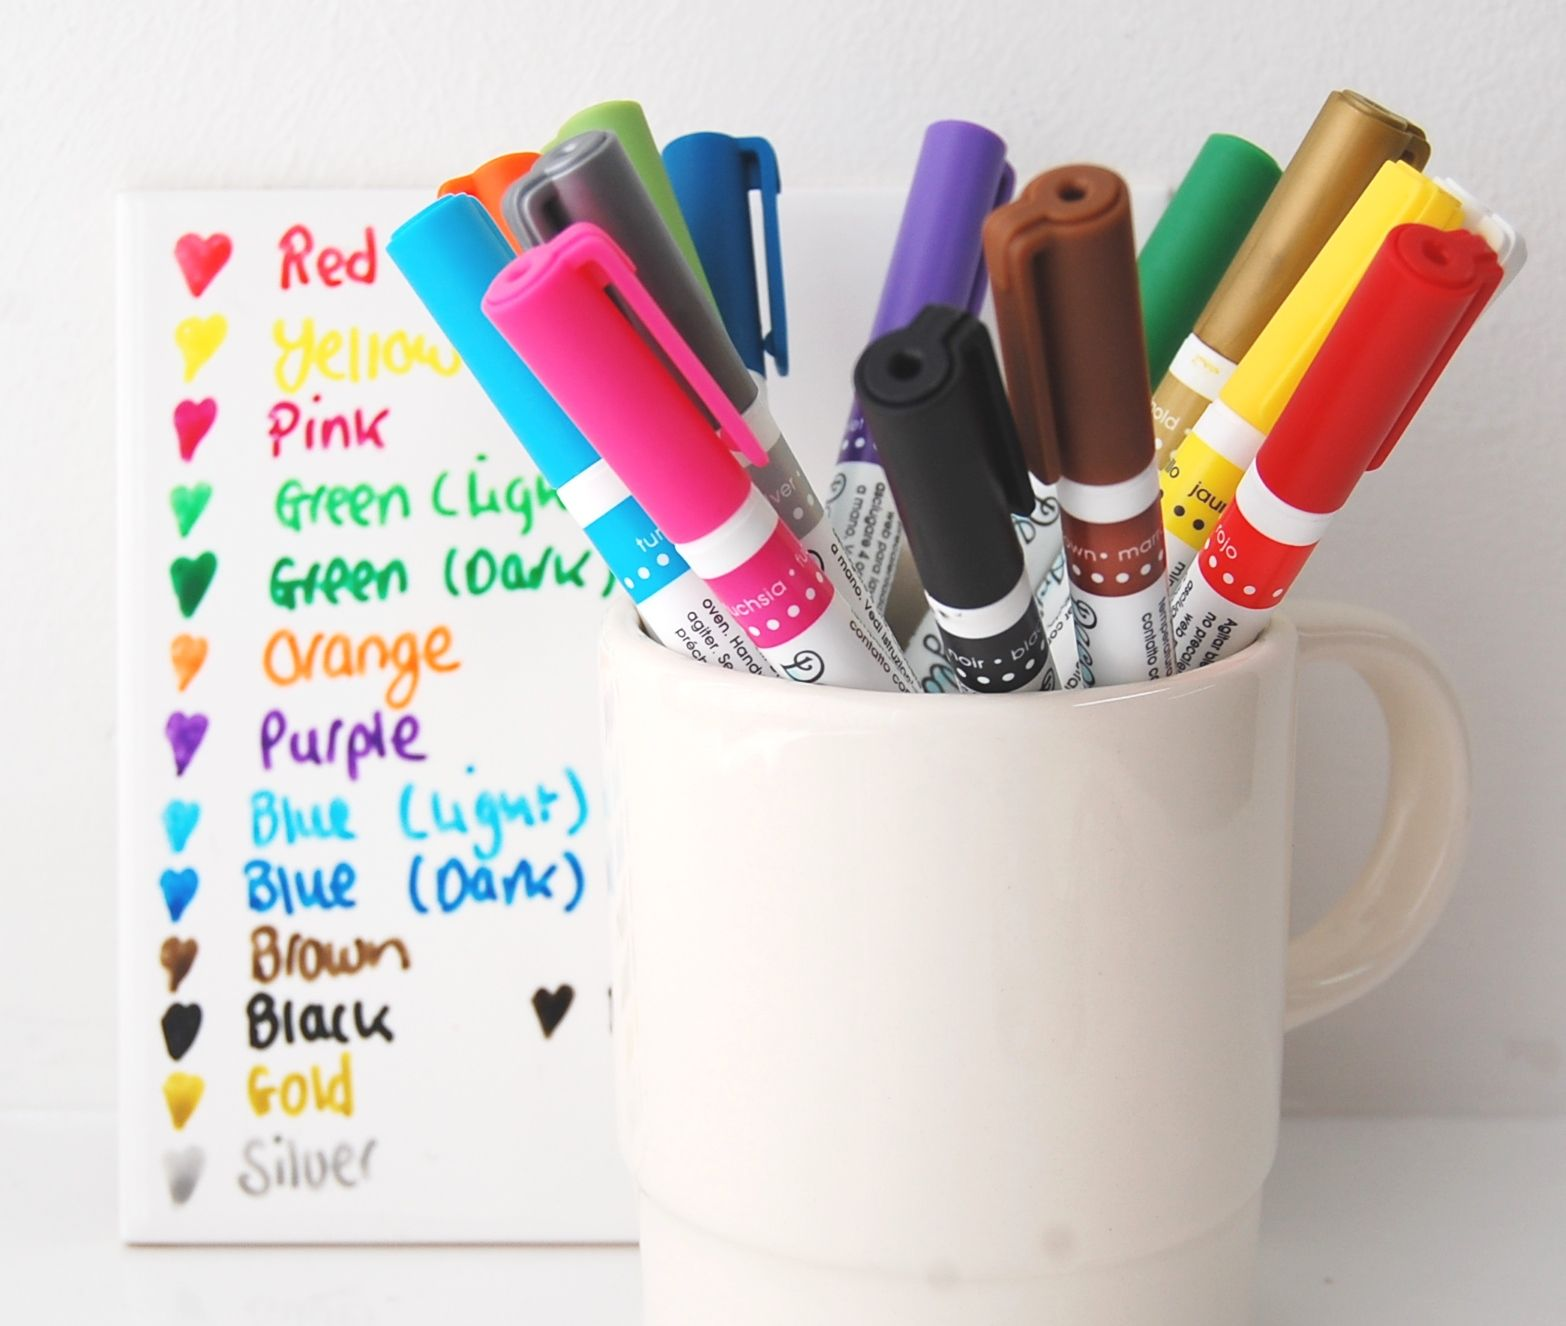 Diy Paint A Mug Or Glazed Ceramic Tile Using Decoart Glass Paint Marker Quality Paint Markers Designed For Glass And Gl Glass Paint Markers Glass Painting Mugs